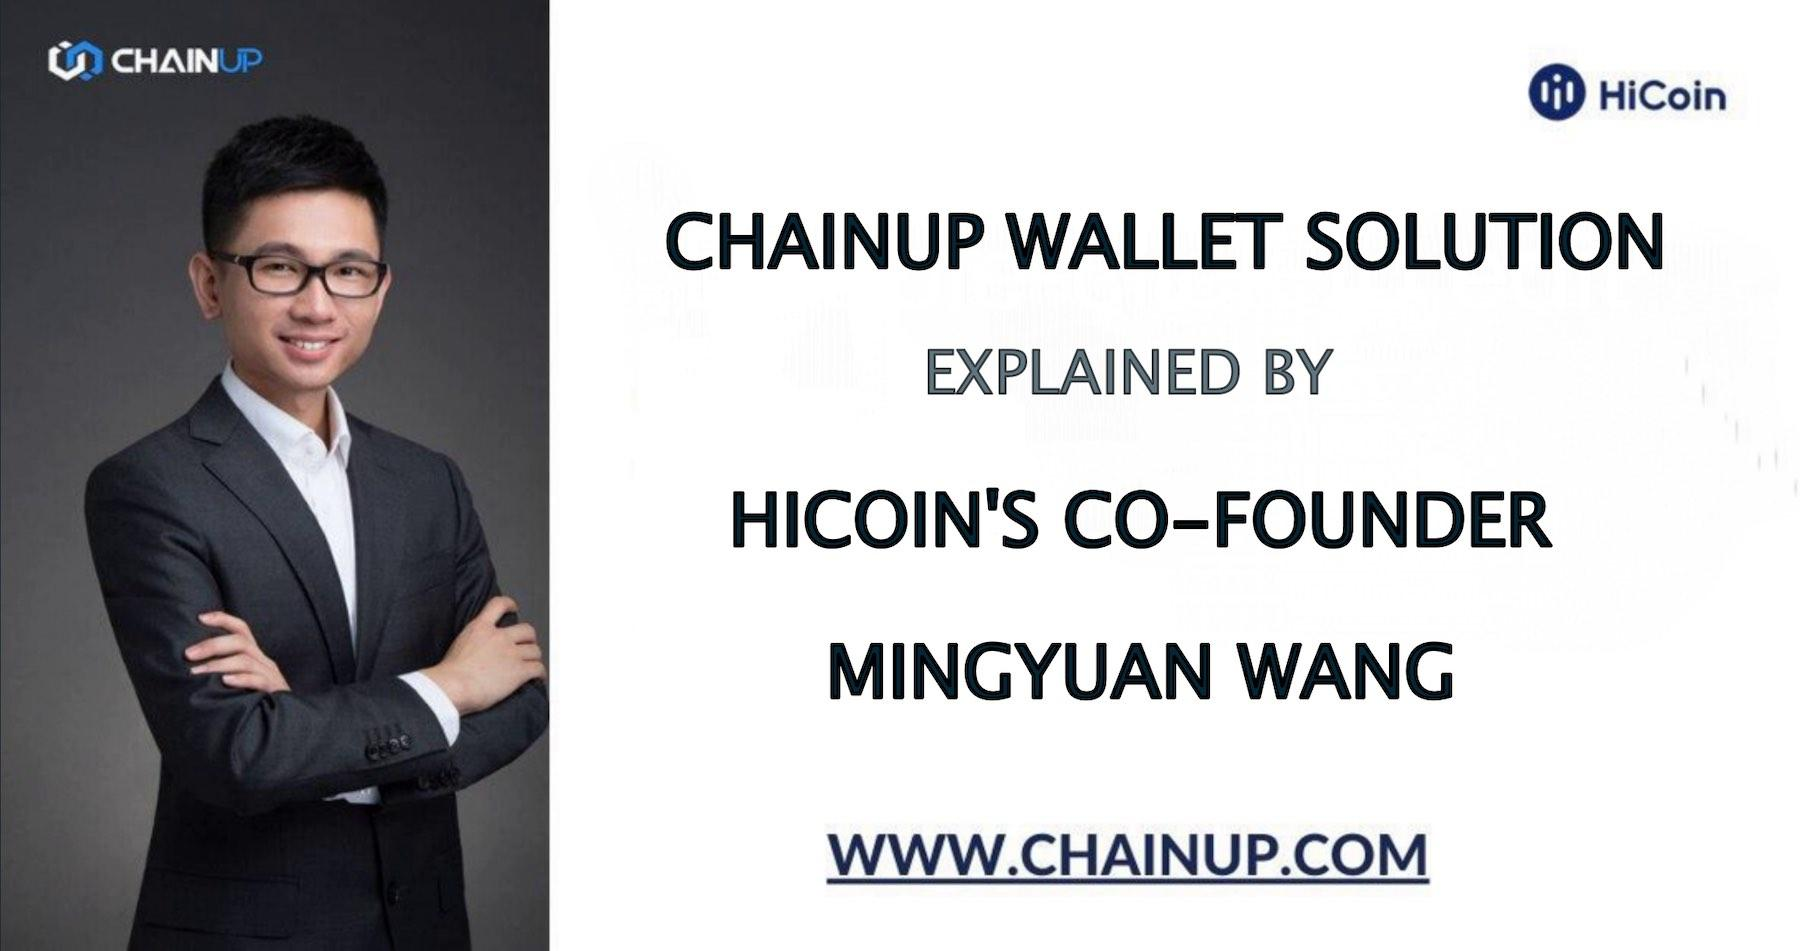 ChainUP Wallet Solution Explained by HiCoin Co-Founder, MingYuan Wang